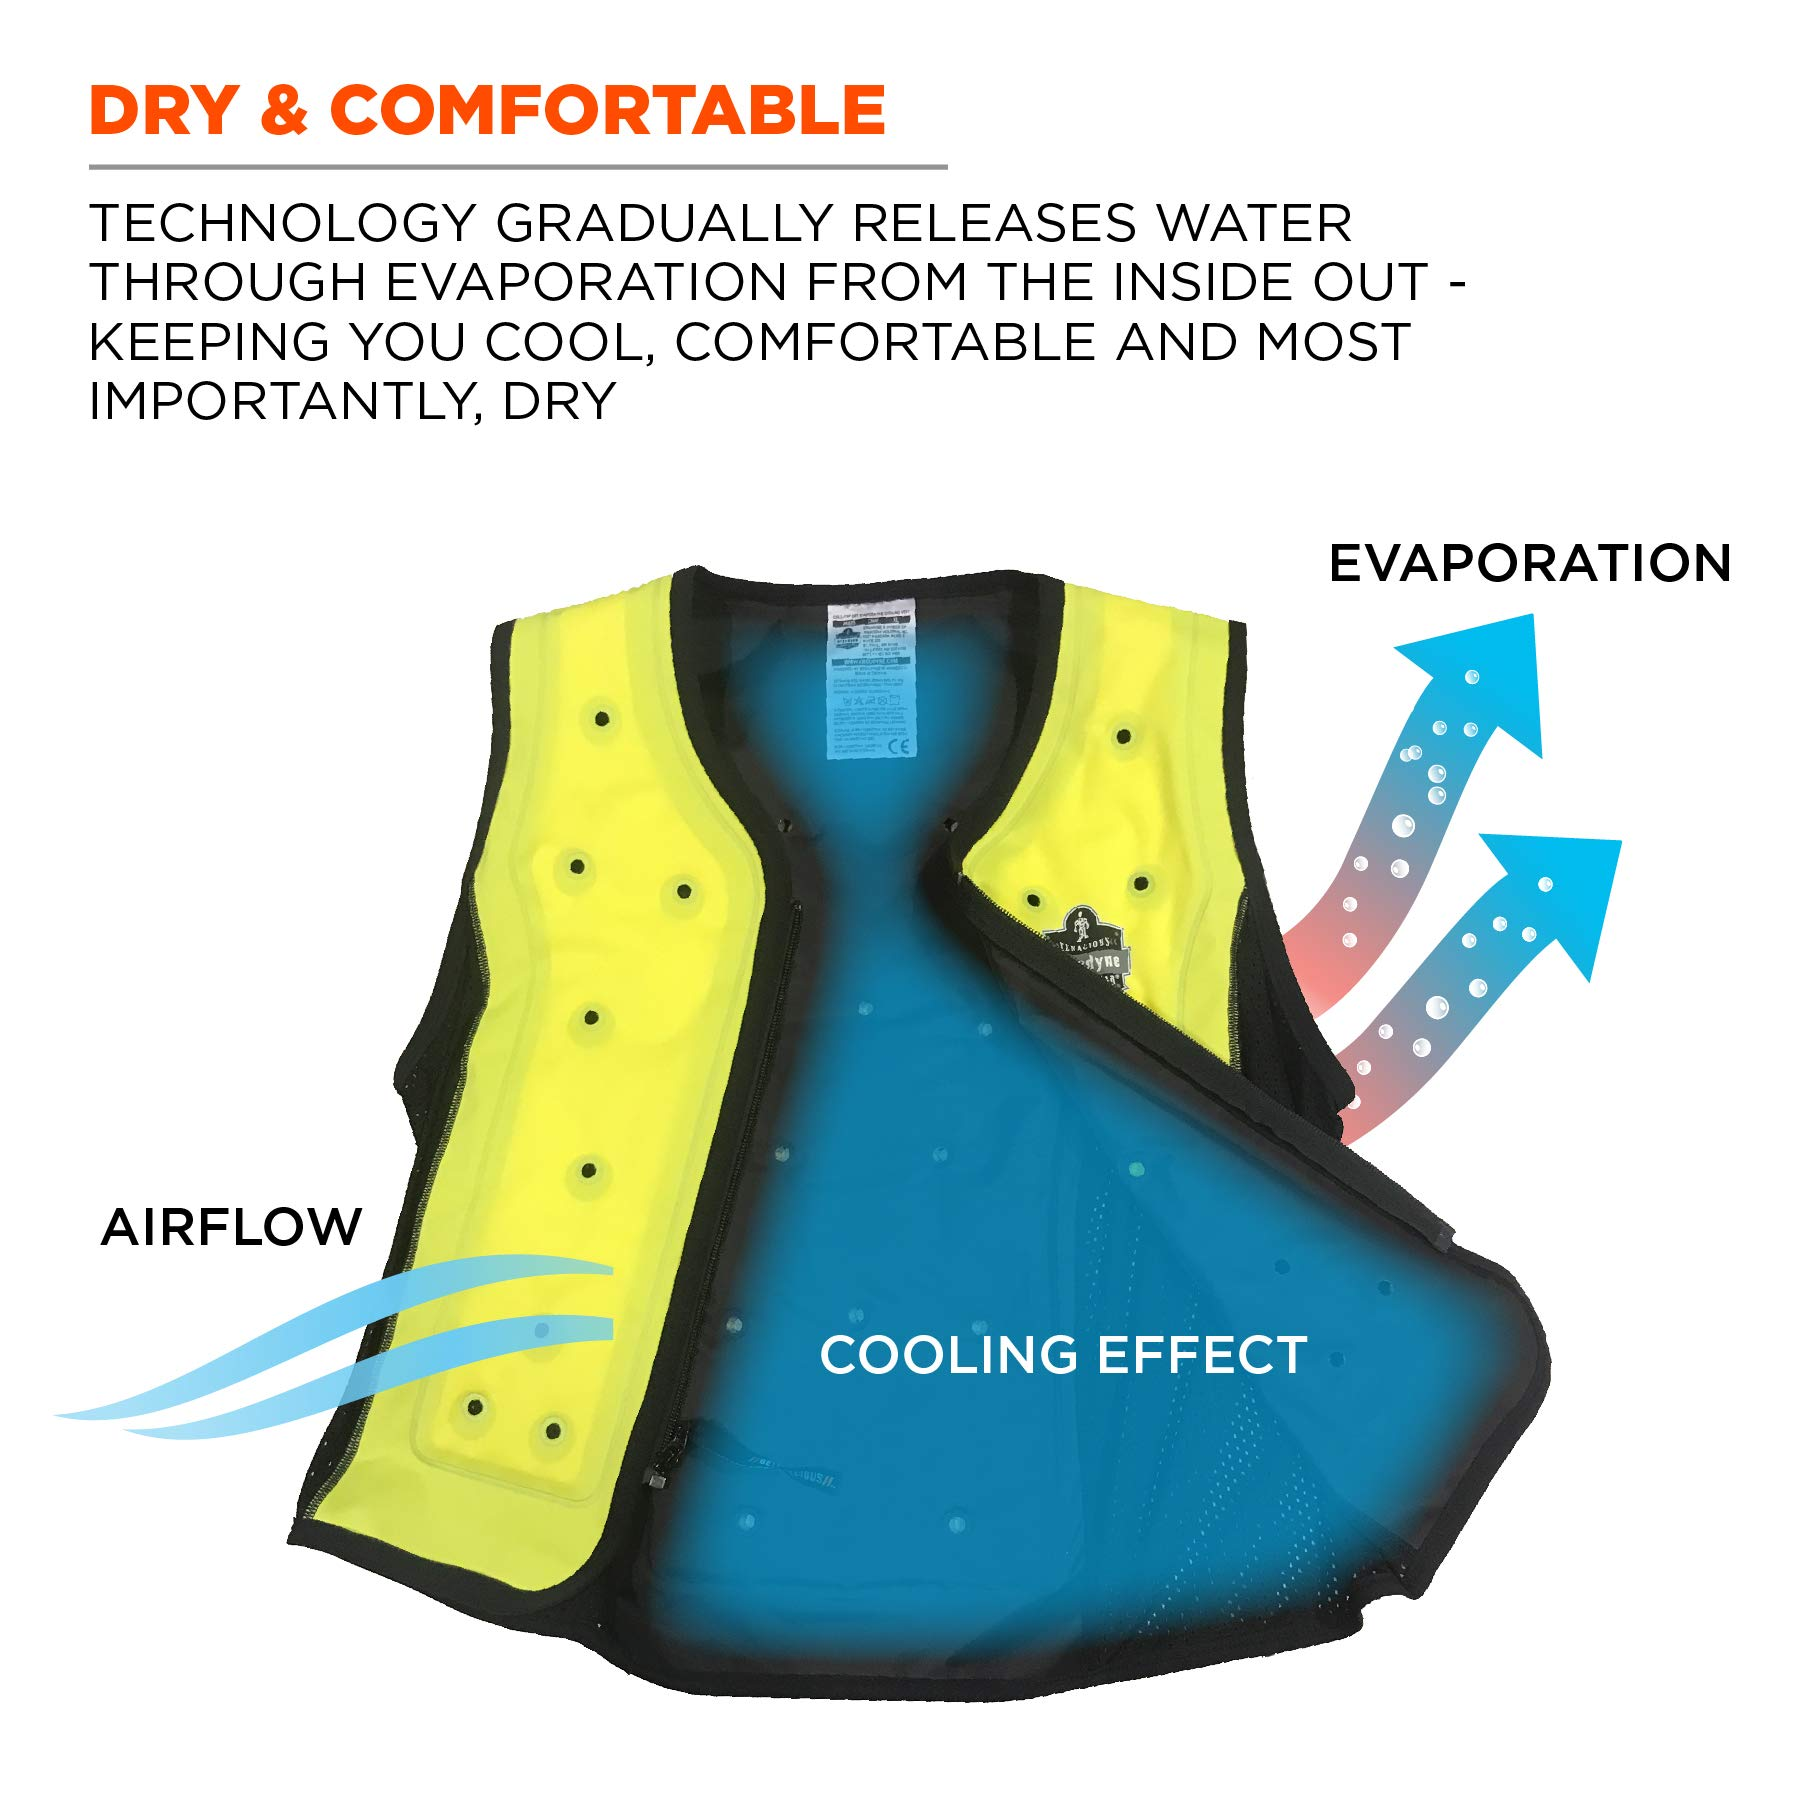 Evaporative Cooling Vest, Wearer Stays Cool and Dry, Breathable Comfort, Zipper Closure, Ergodyne Chill-Its 6685 by Ergodyne (Image #4)